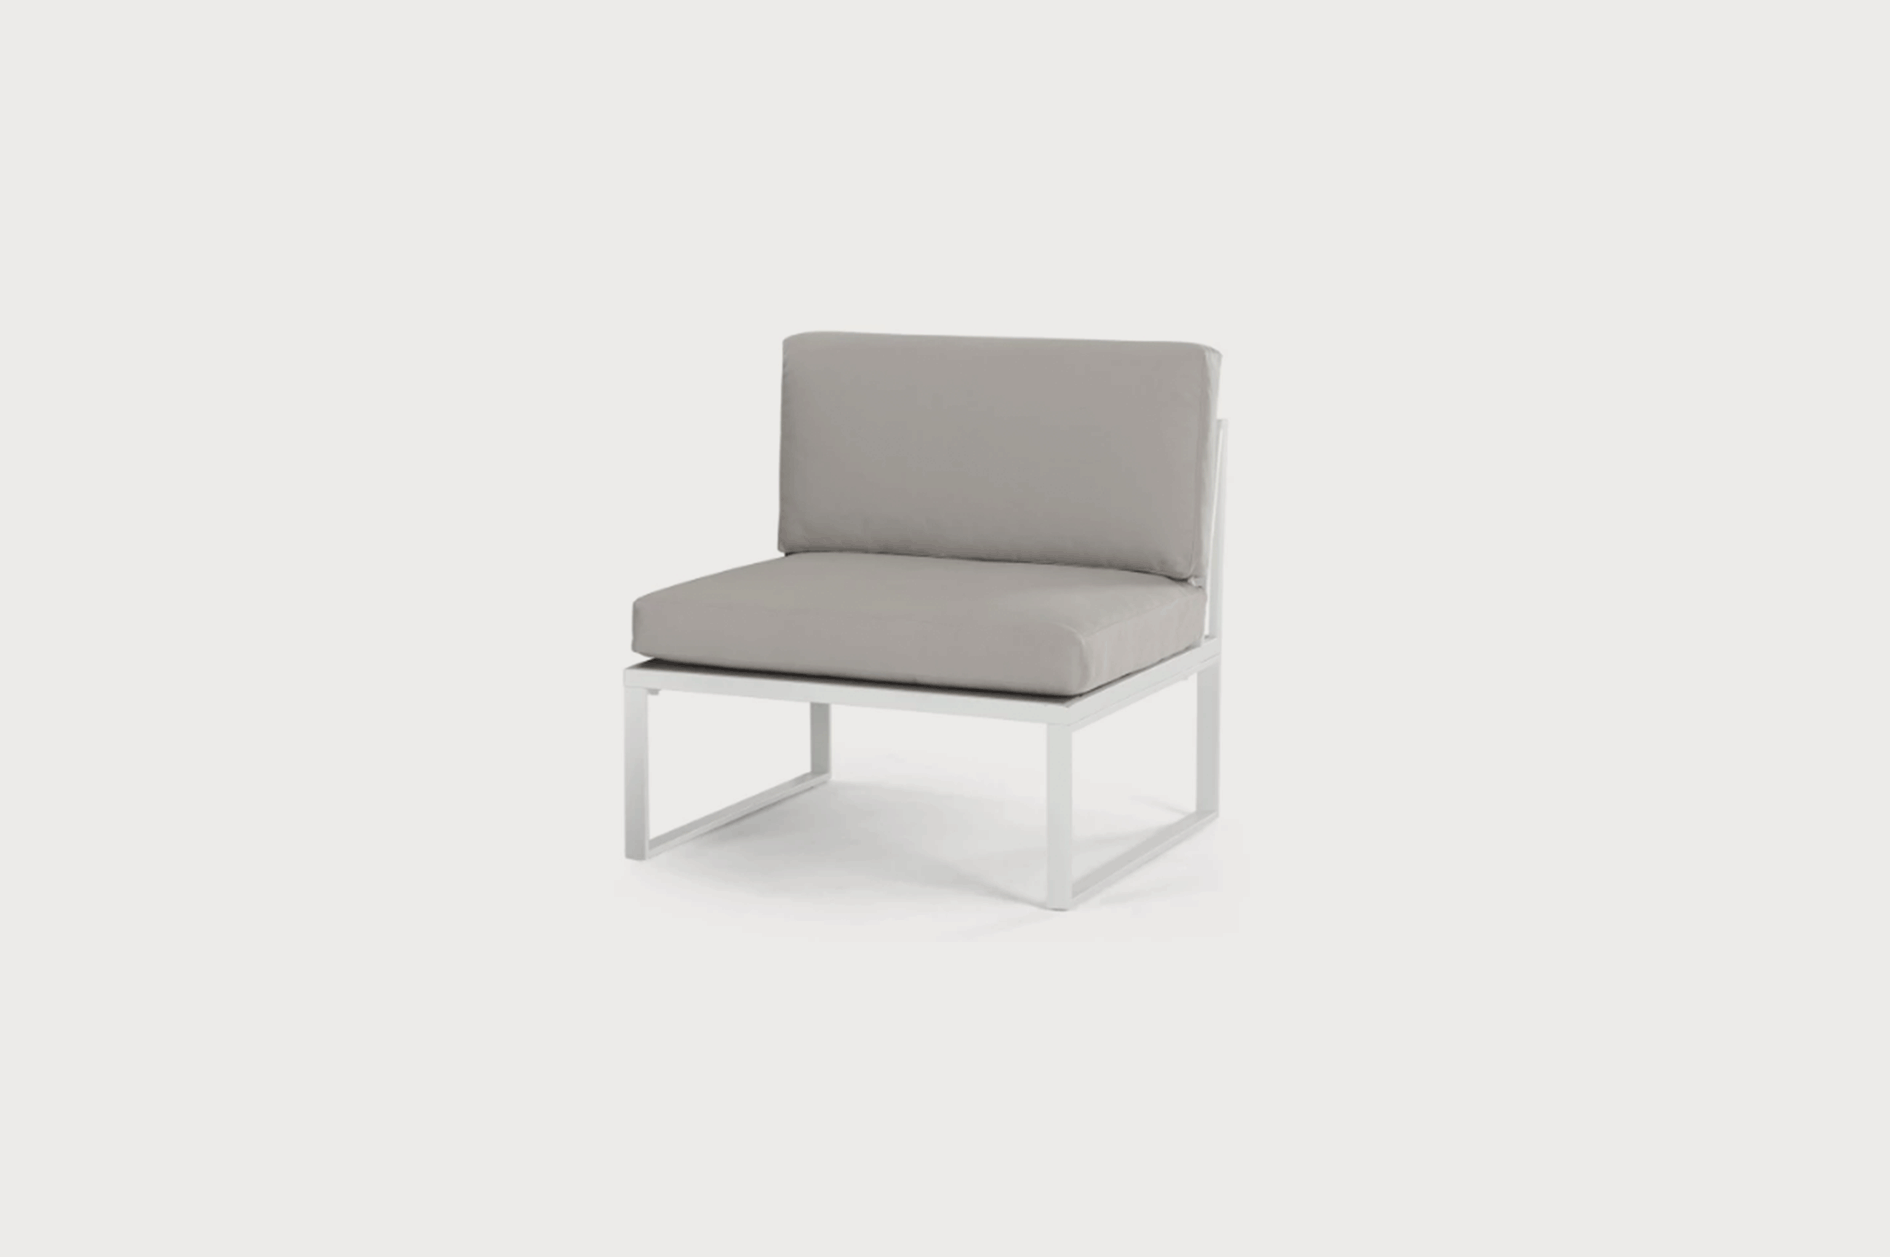 Alfresco modular armchair